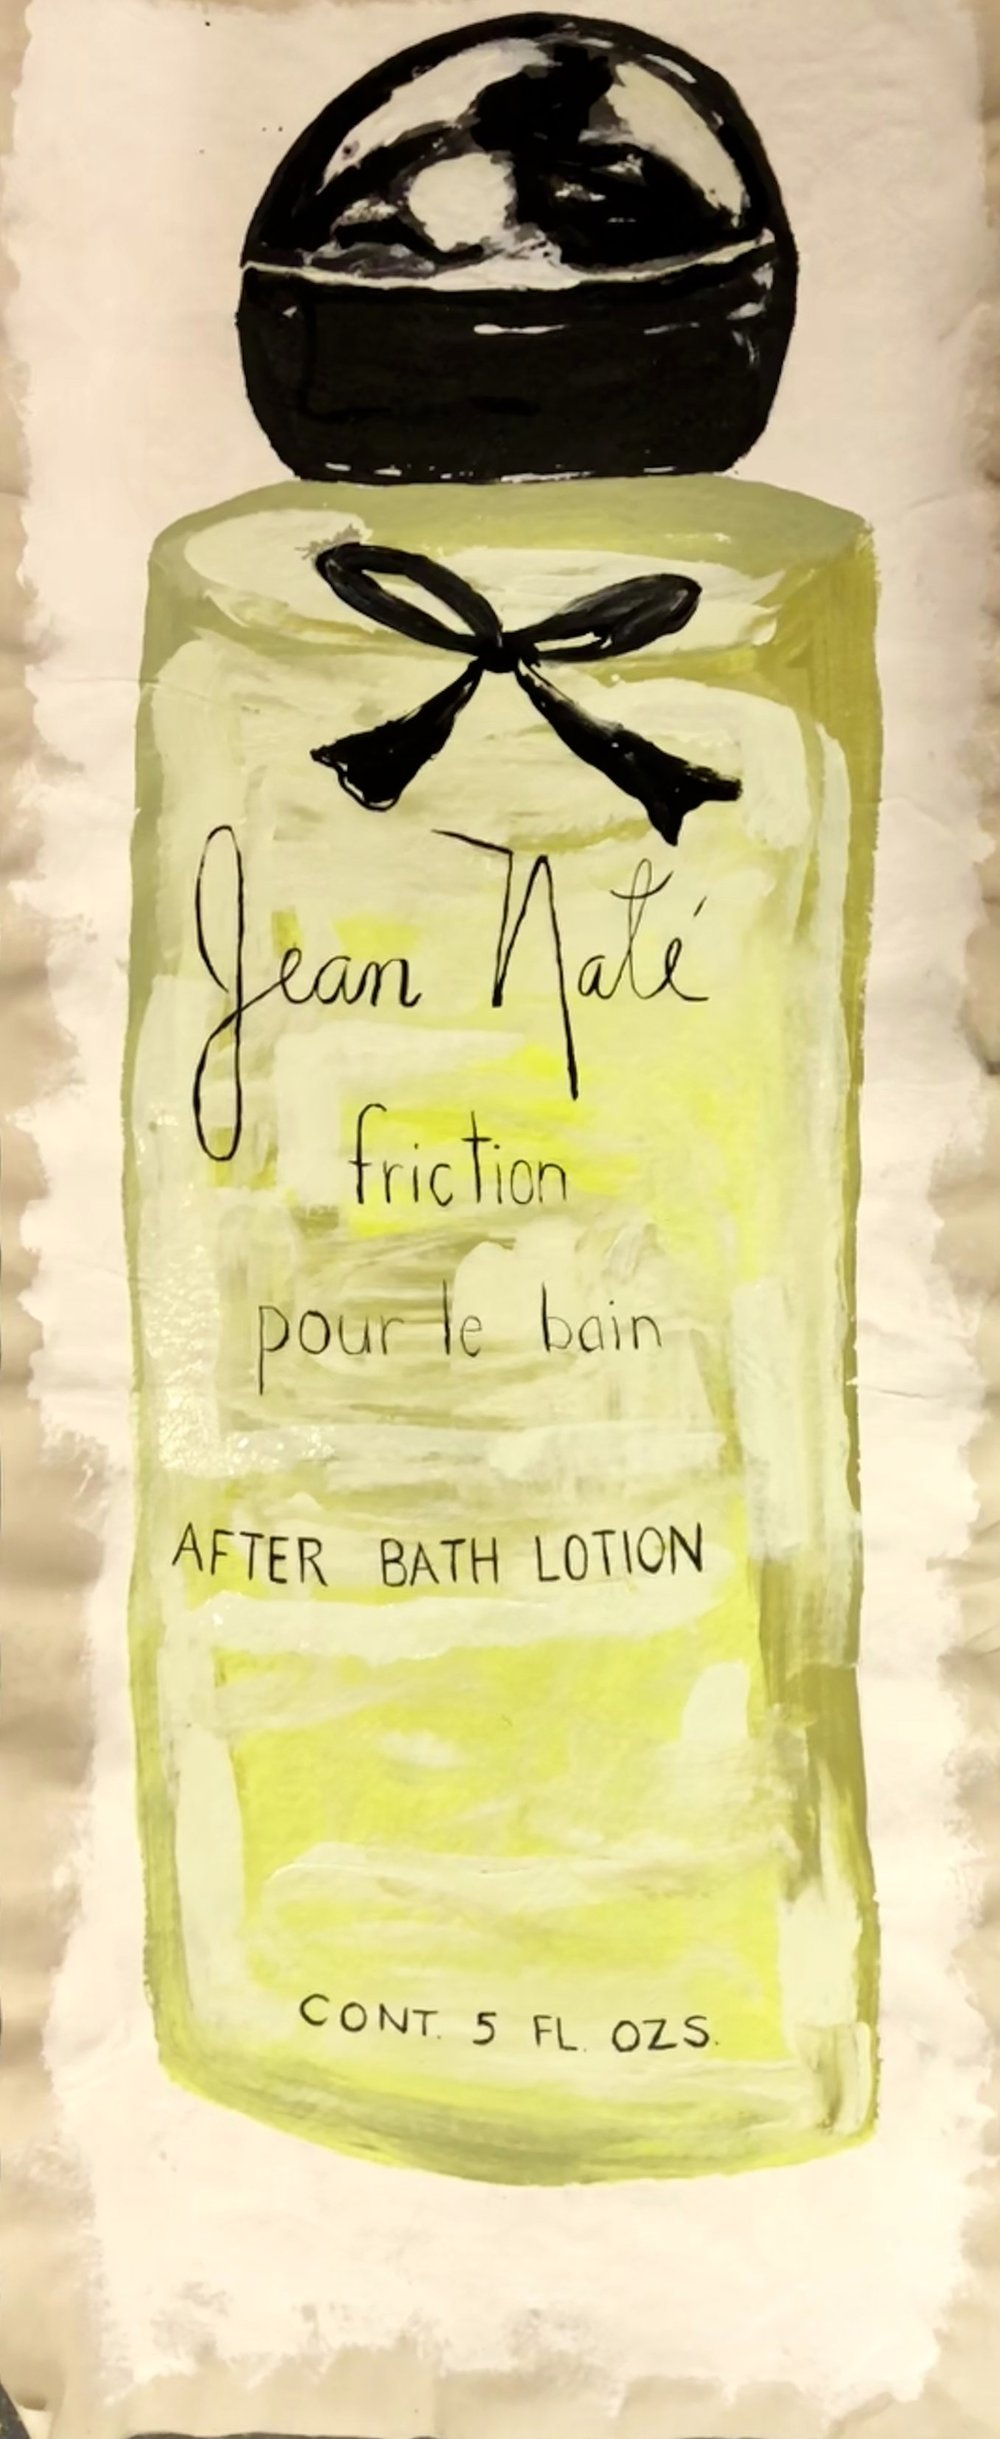 "COSMETICS SERIES-JEAN NATE' FRICTION-ACRLIC ON UNSTRETCHED CANVAS-6'X 30""-2018 $1400"